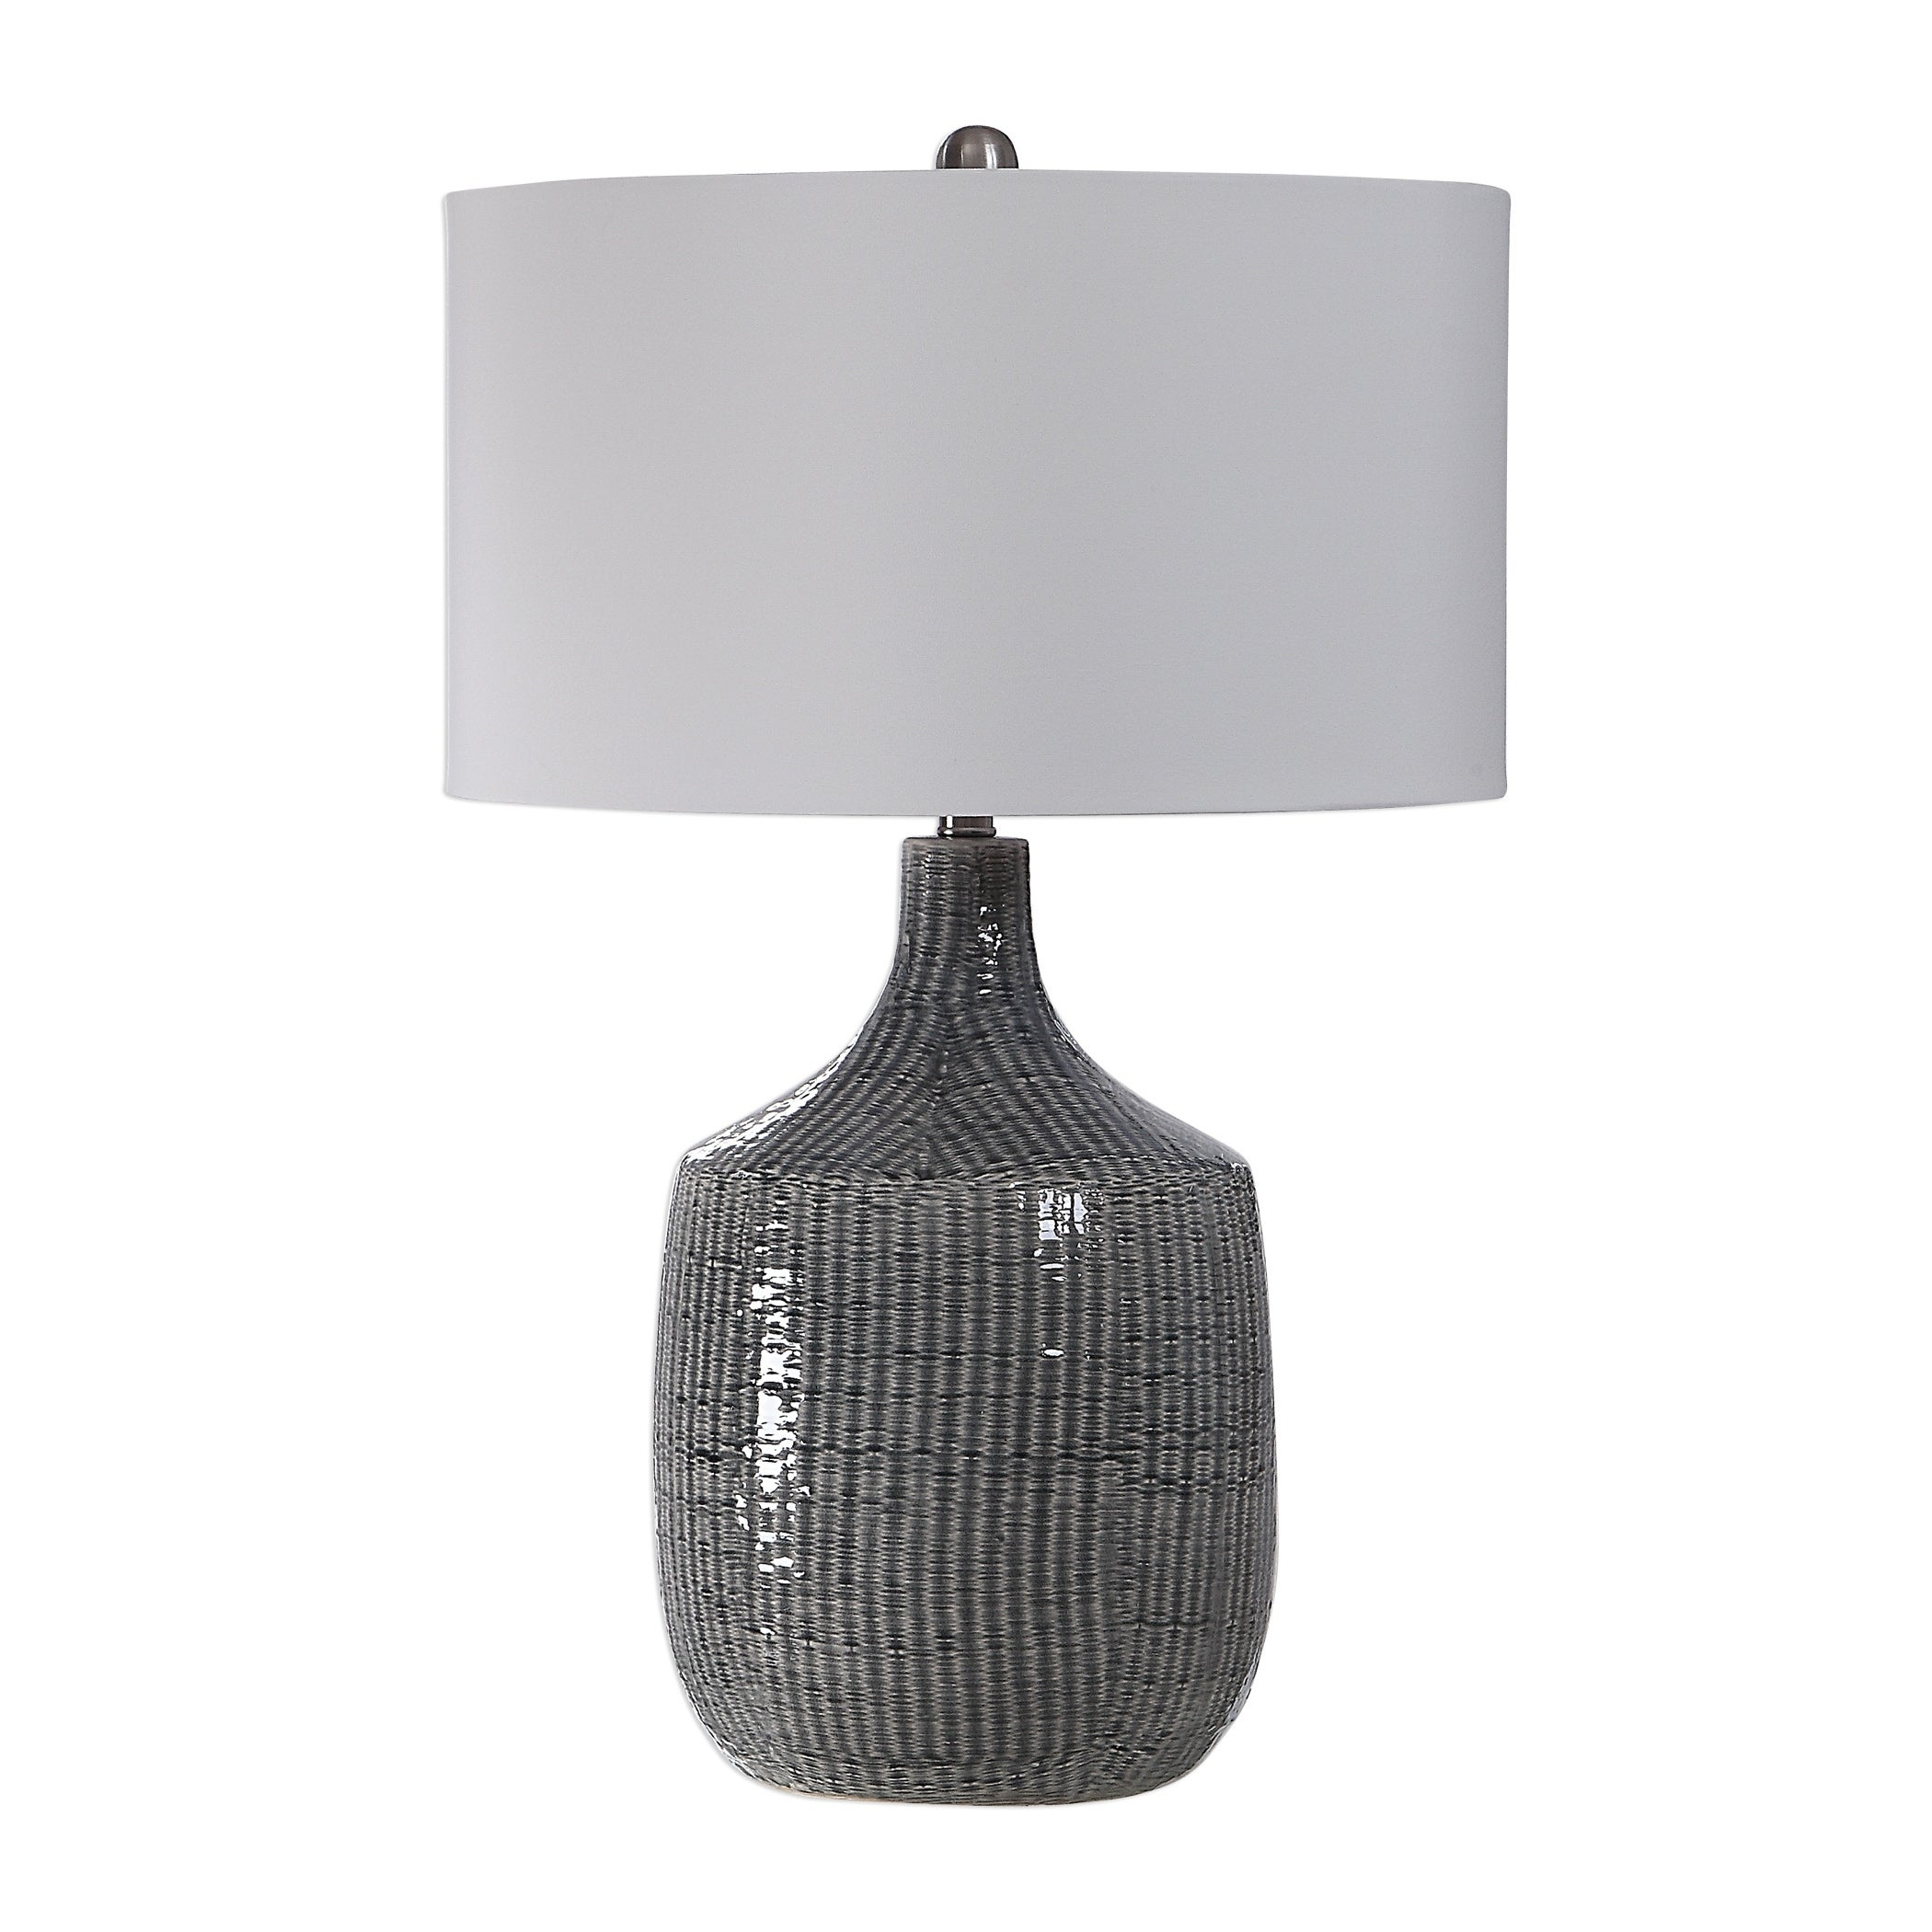 78e56b4afc Uttermost Table Lamps